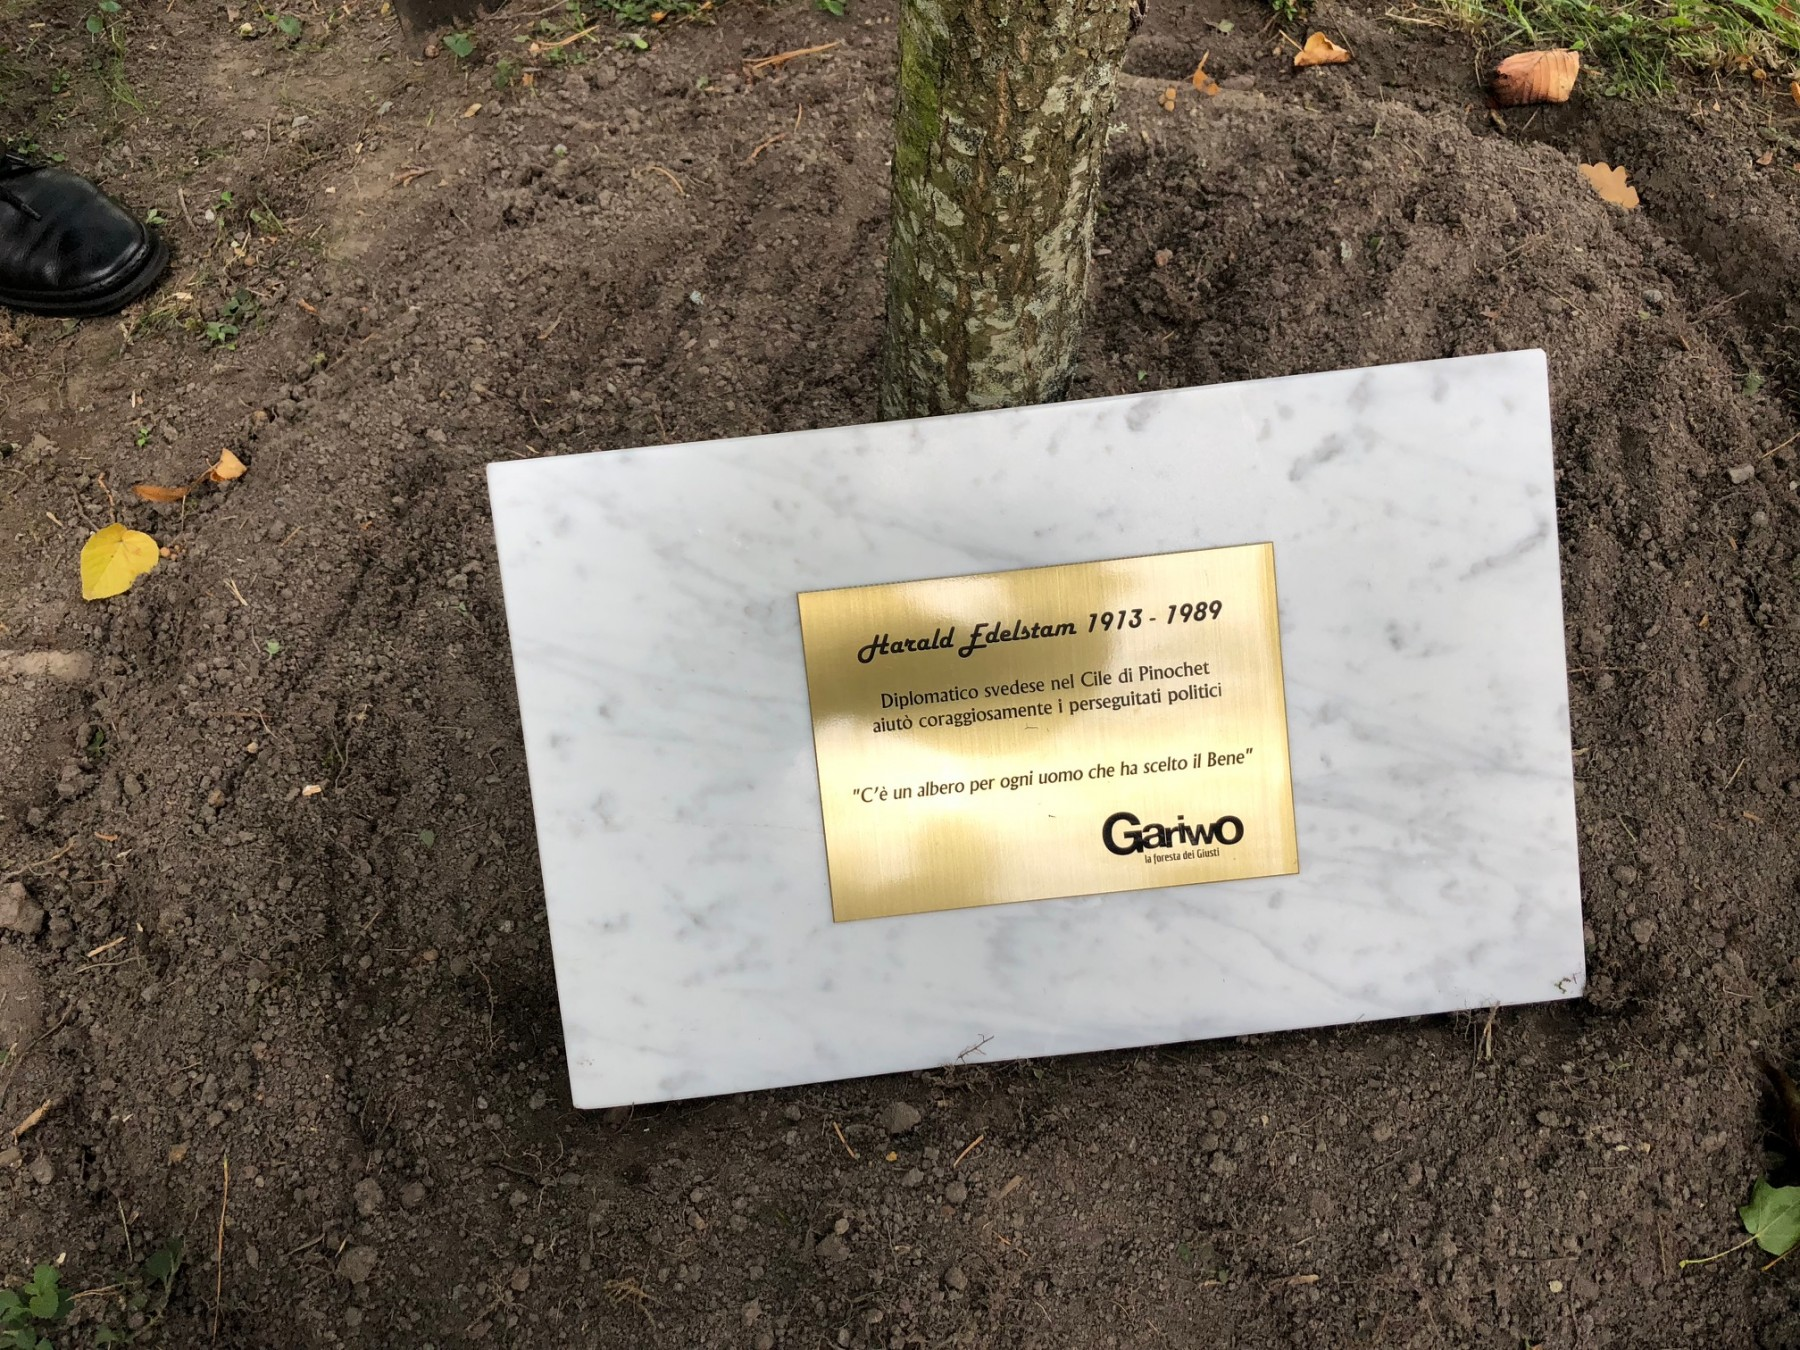 the plaque for Harald Edelstam